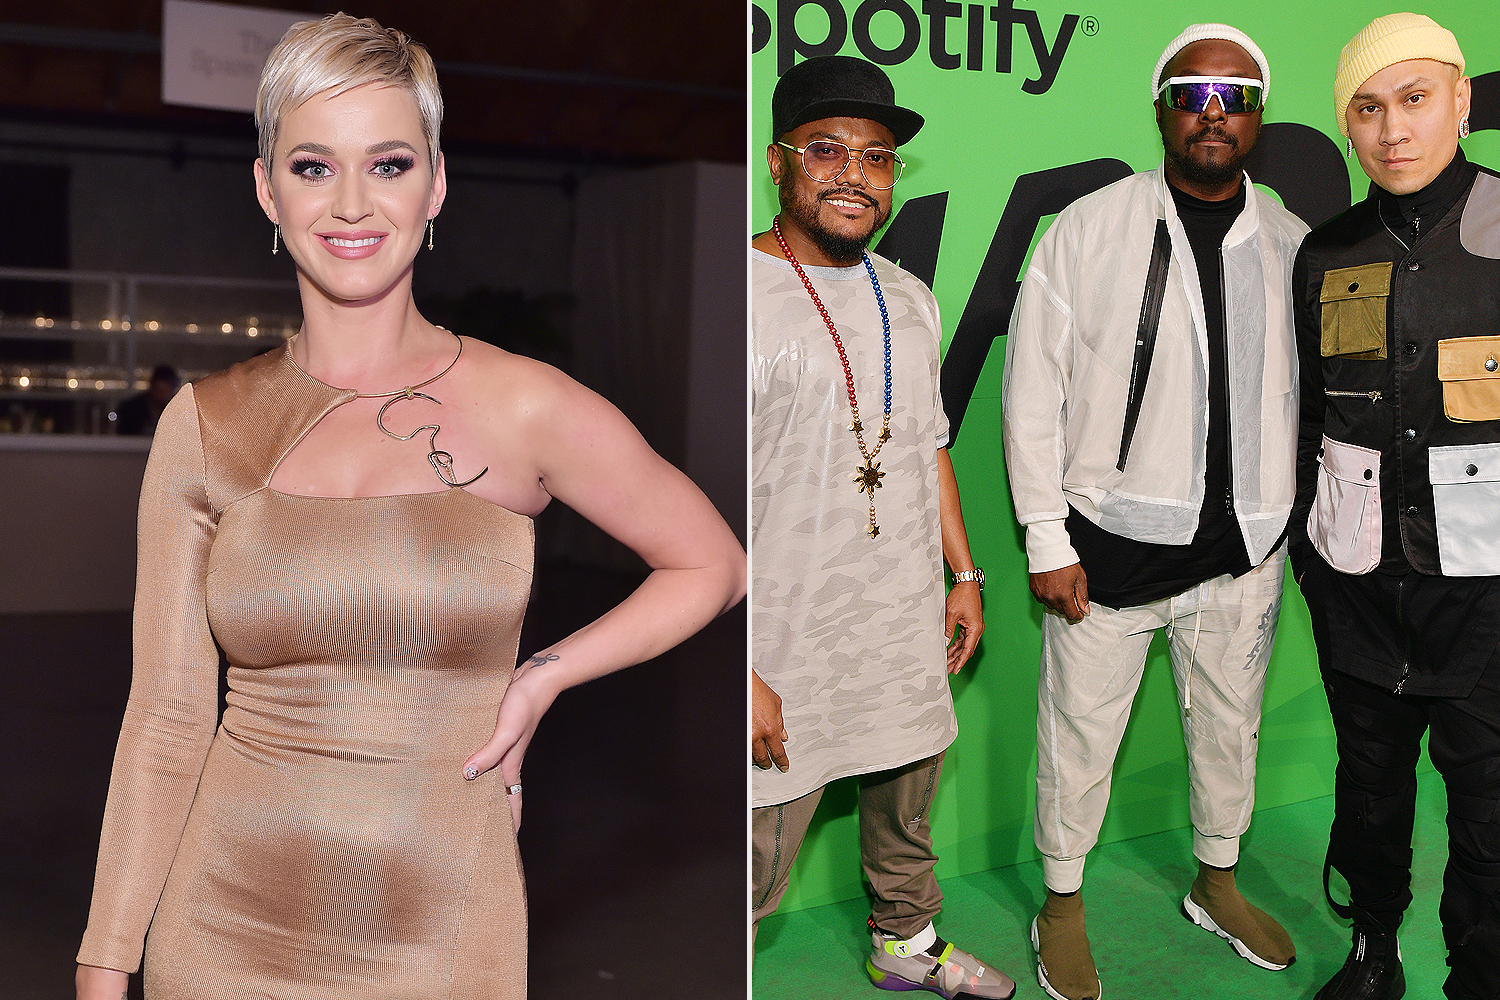 Katy Perry, Black Eyed Peas